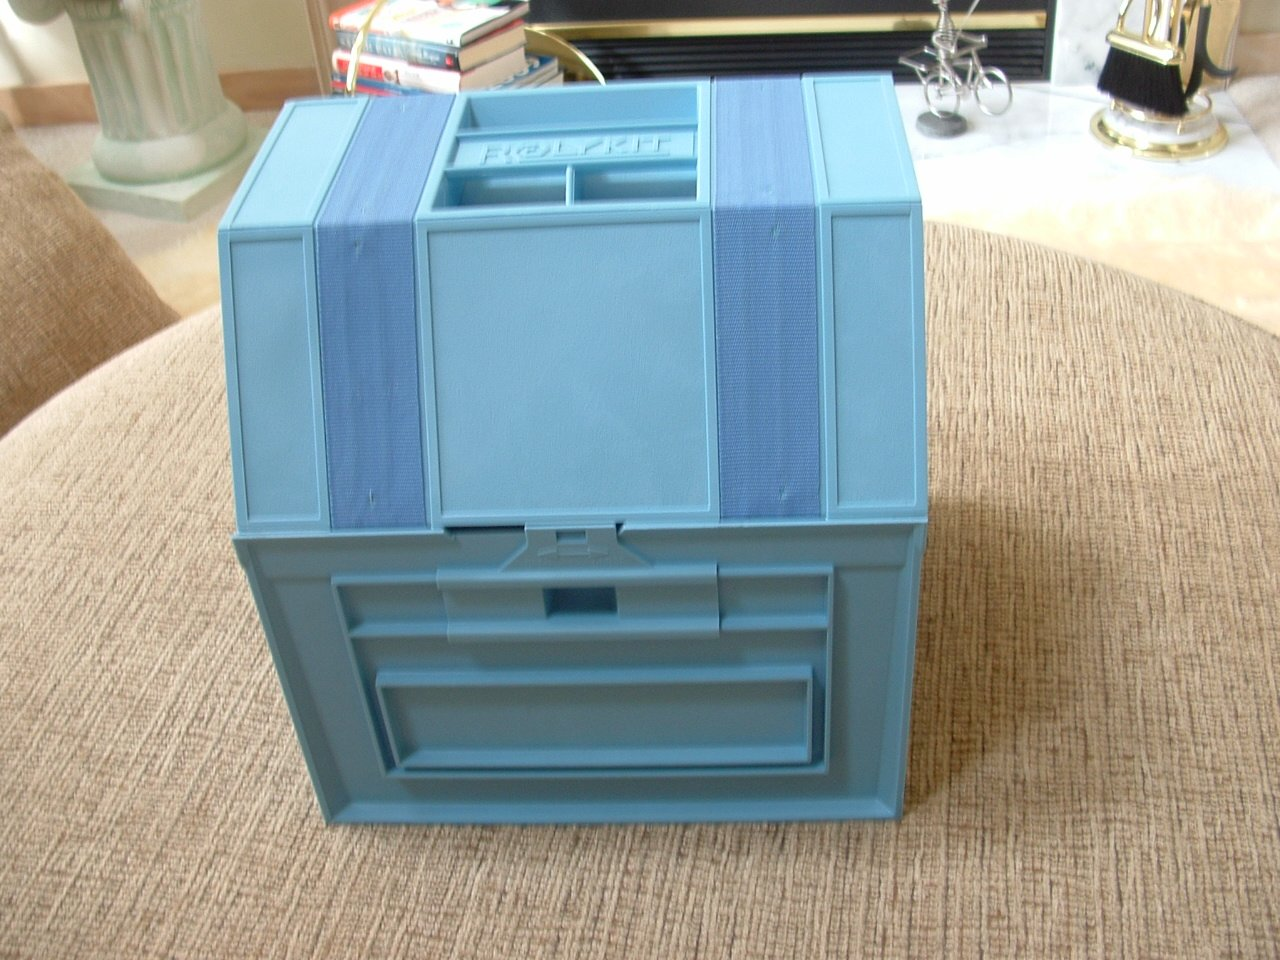 ORIGINAL ROLYKIT TOOLBOX - AS SEEN ON TV - BRAND NEW!